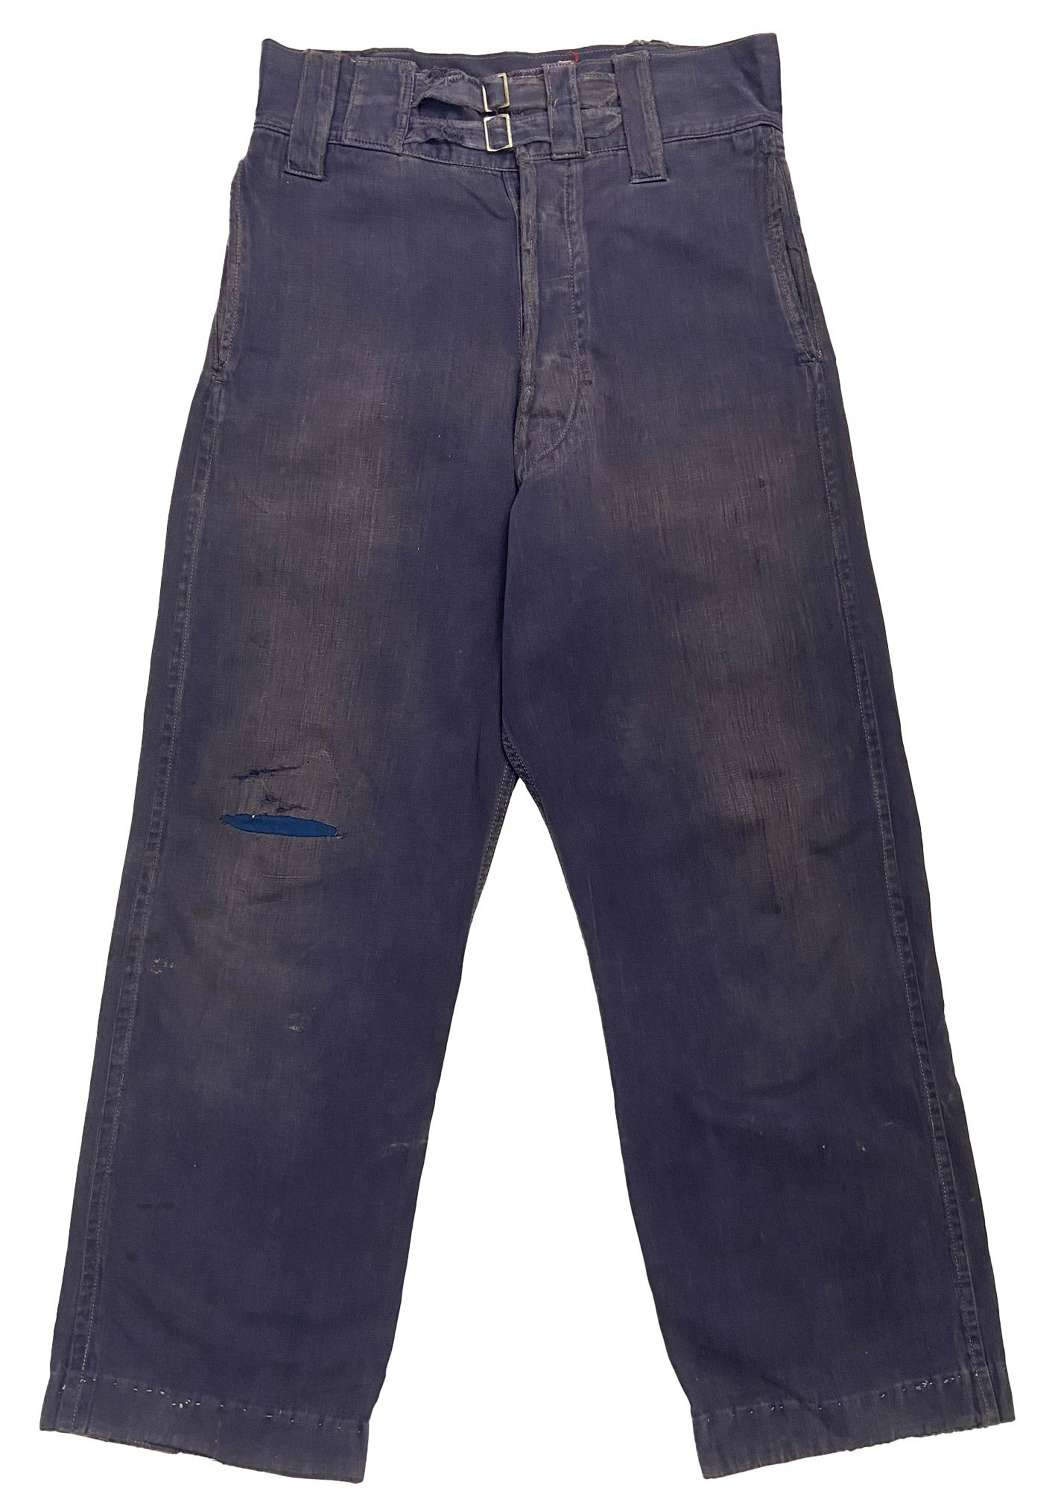 Original Royal Navy Action Working Dress Trousers